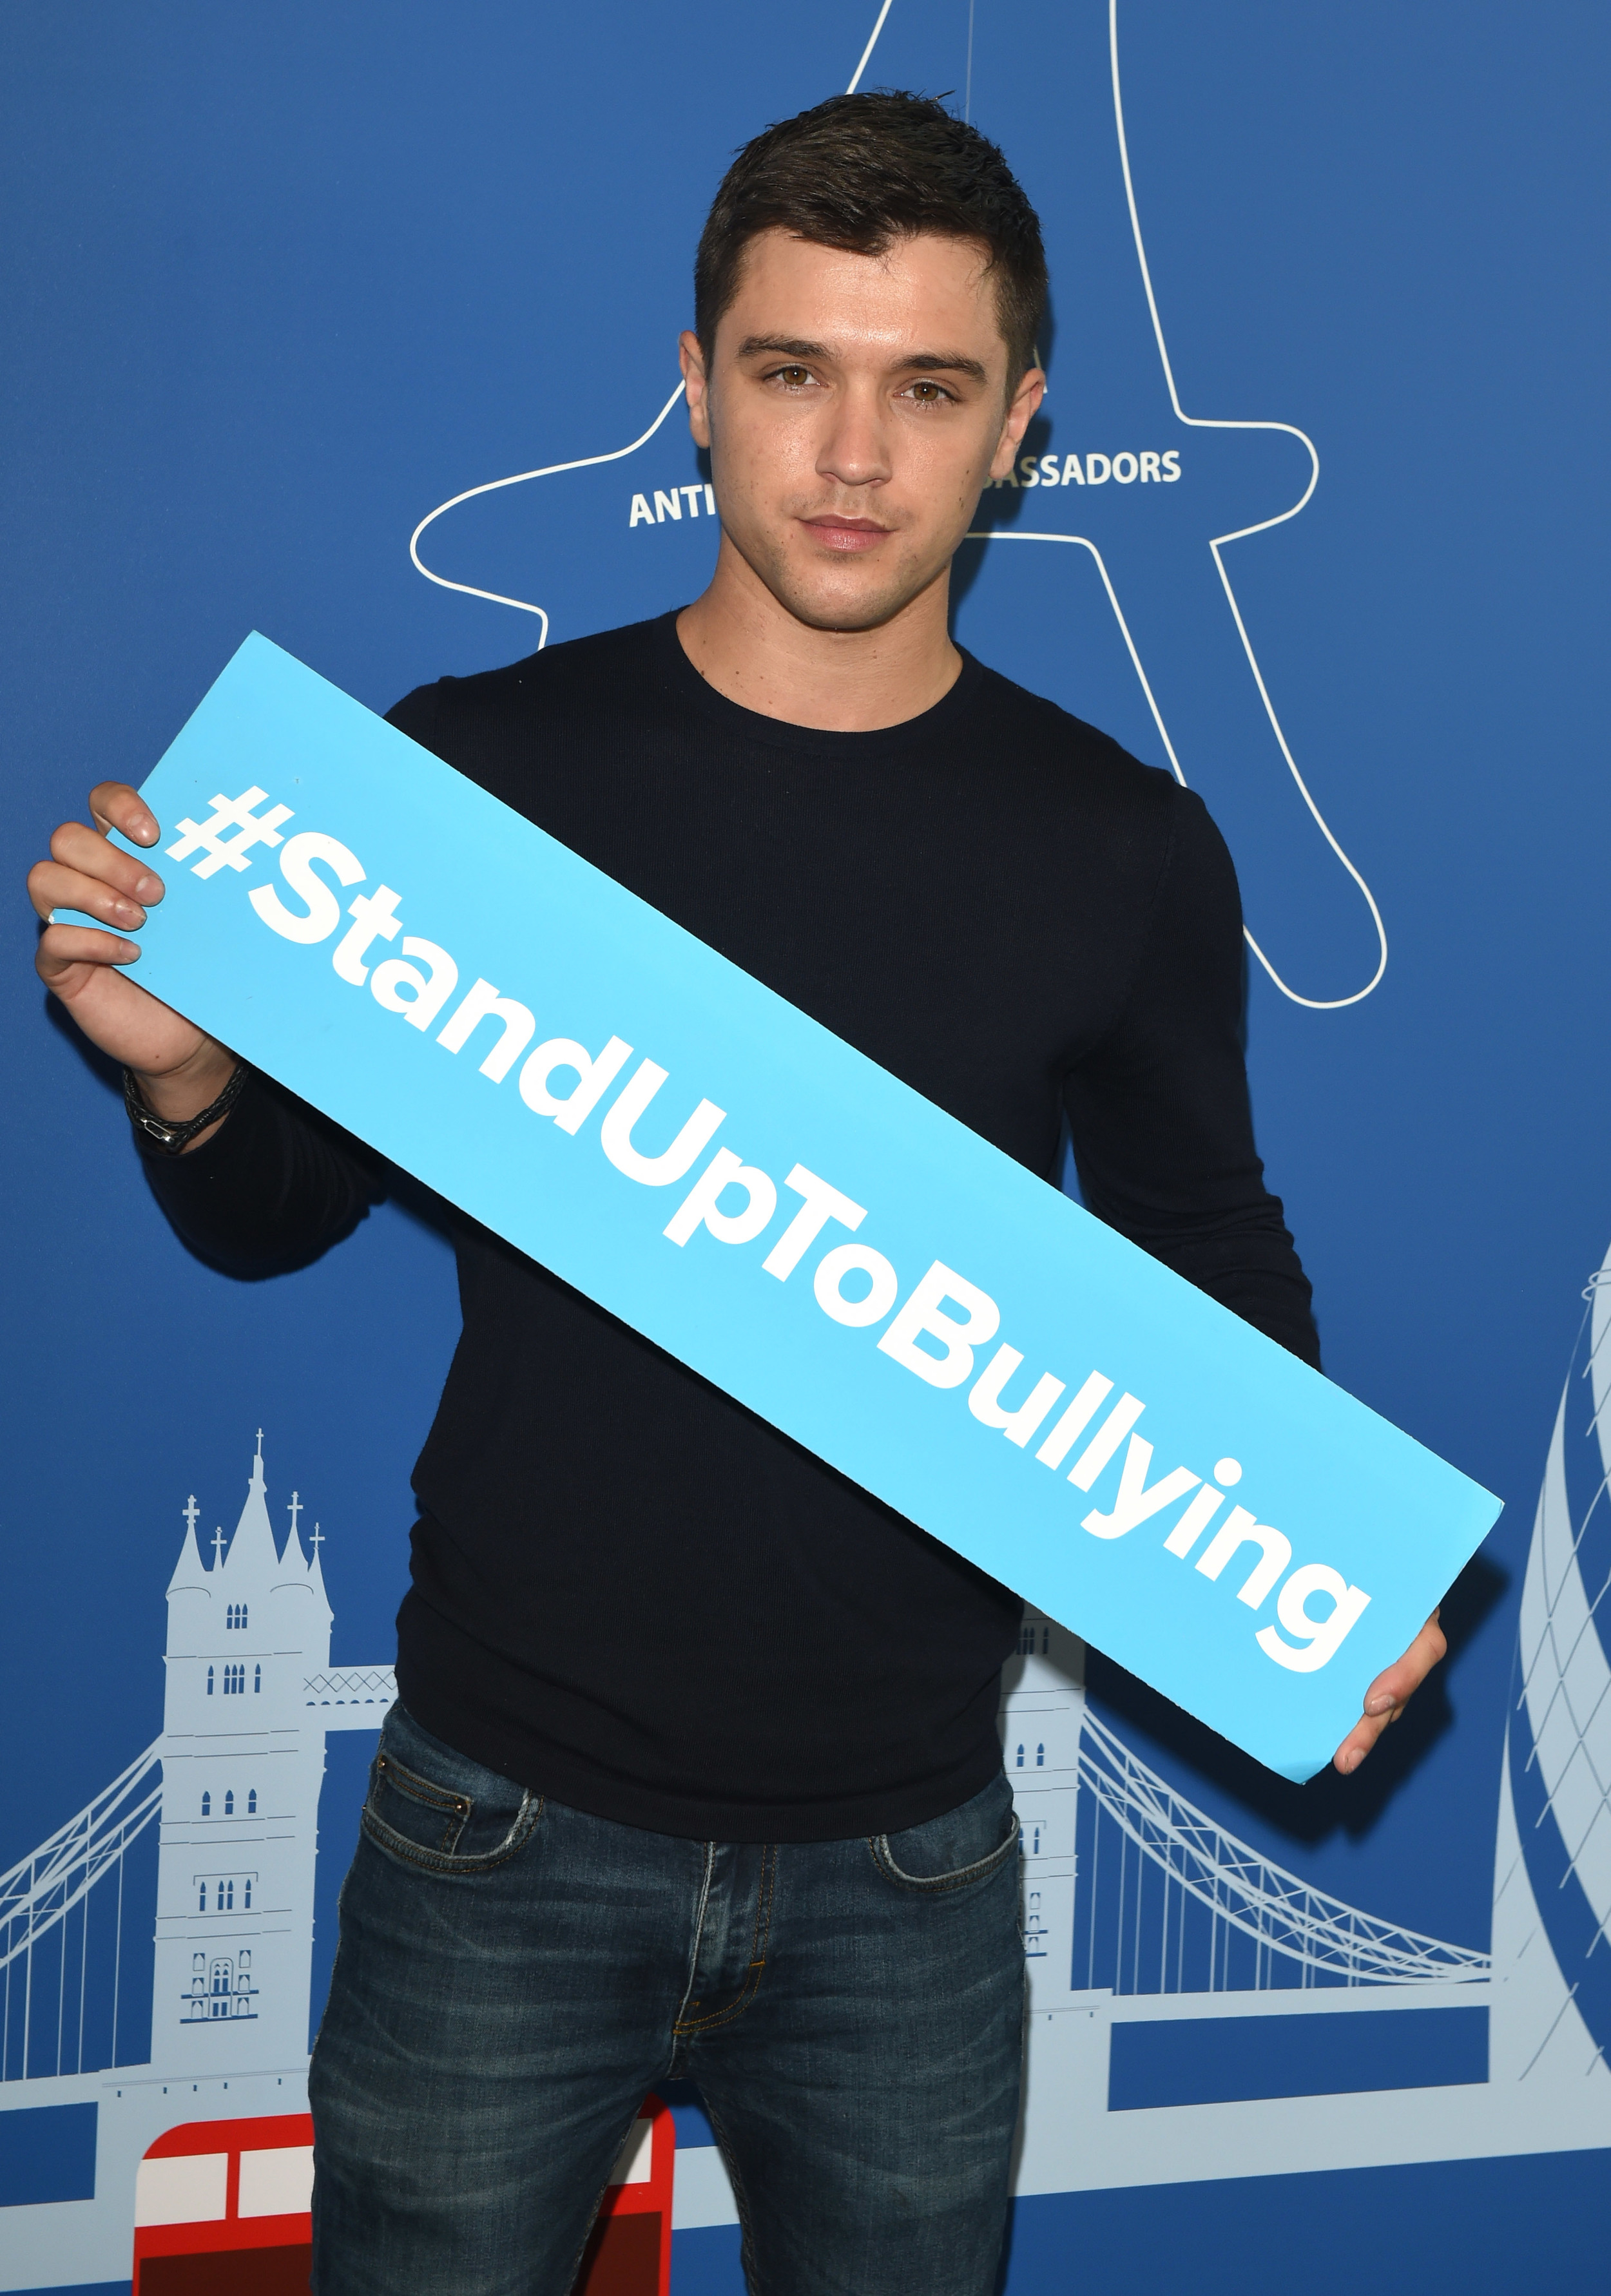 5th July  2016Stand Up To Bullying Day  held at Facebook, 10 Brock Street, London. For more information please go to www.standuptobullying.co.ukHere:CJJ HambletCredit: Justin Goff/GoffPhotos.com